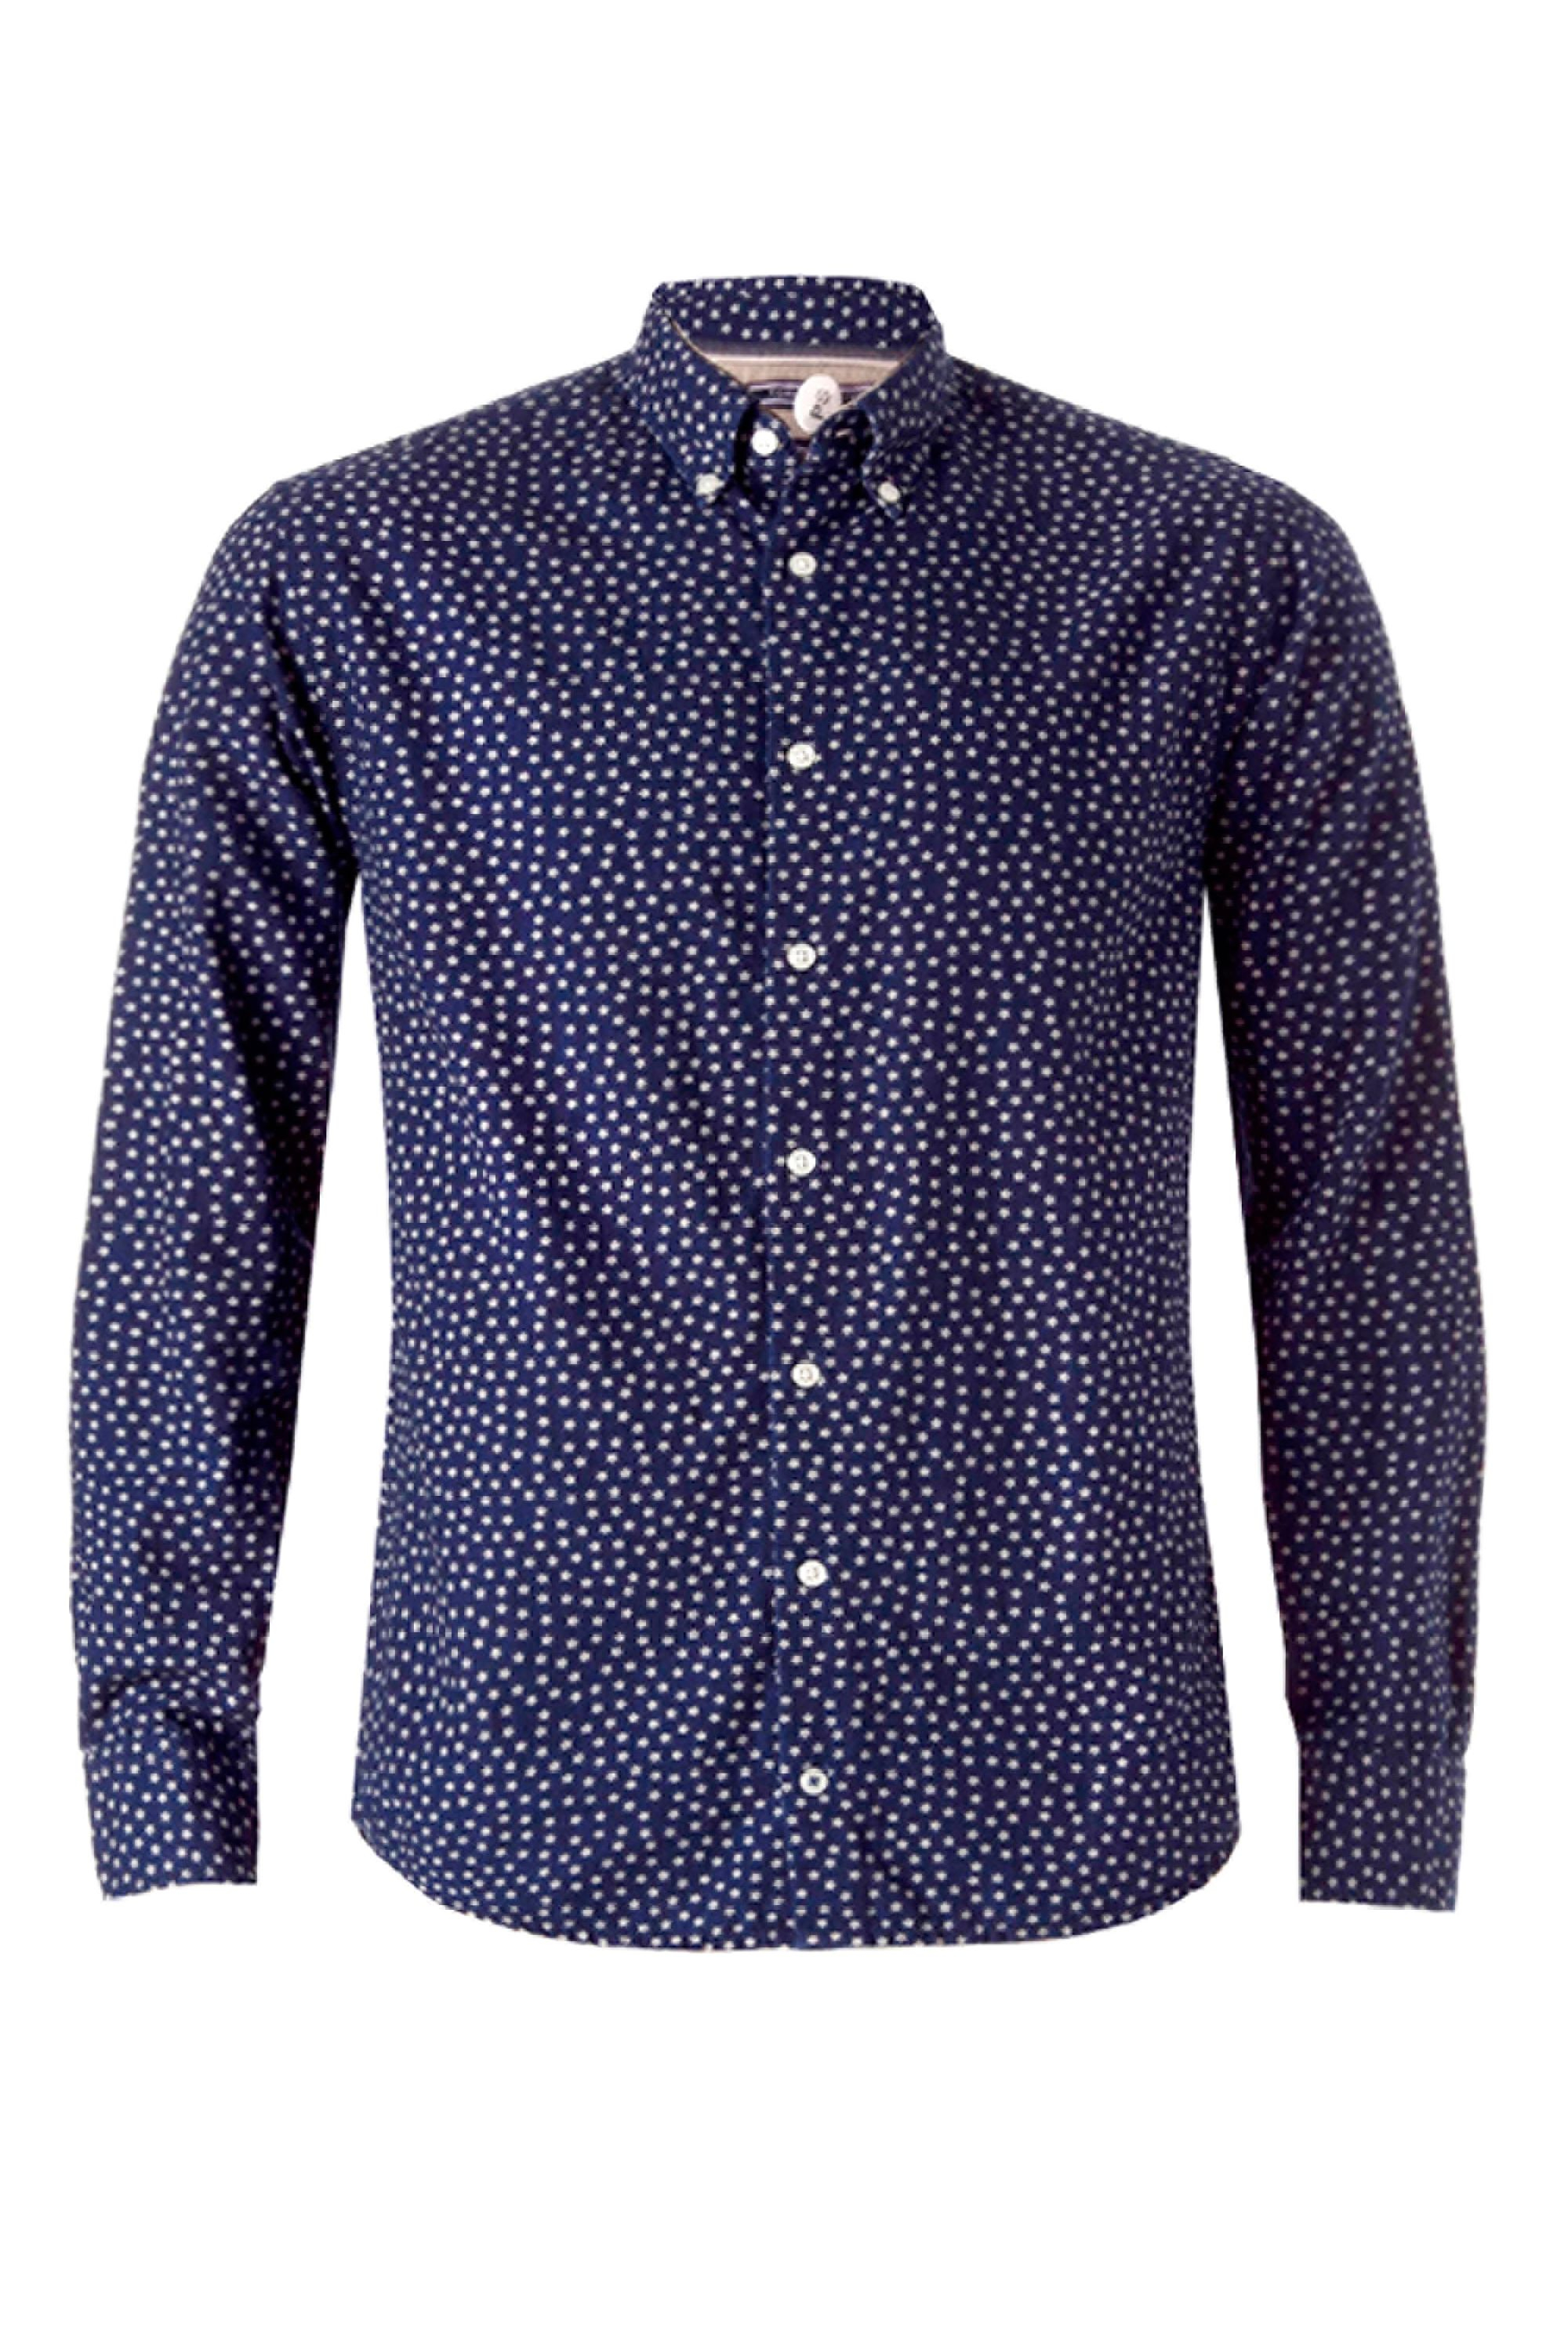 Tommy Hilfiger Star Print Shirt In Blue For Men Lyst